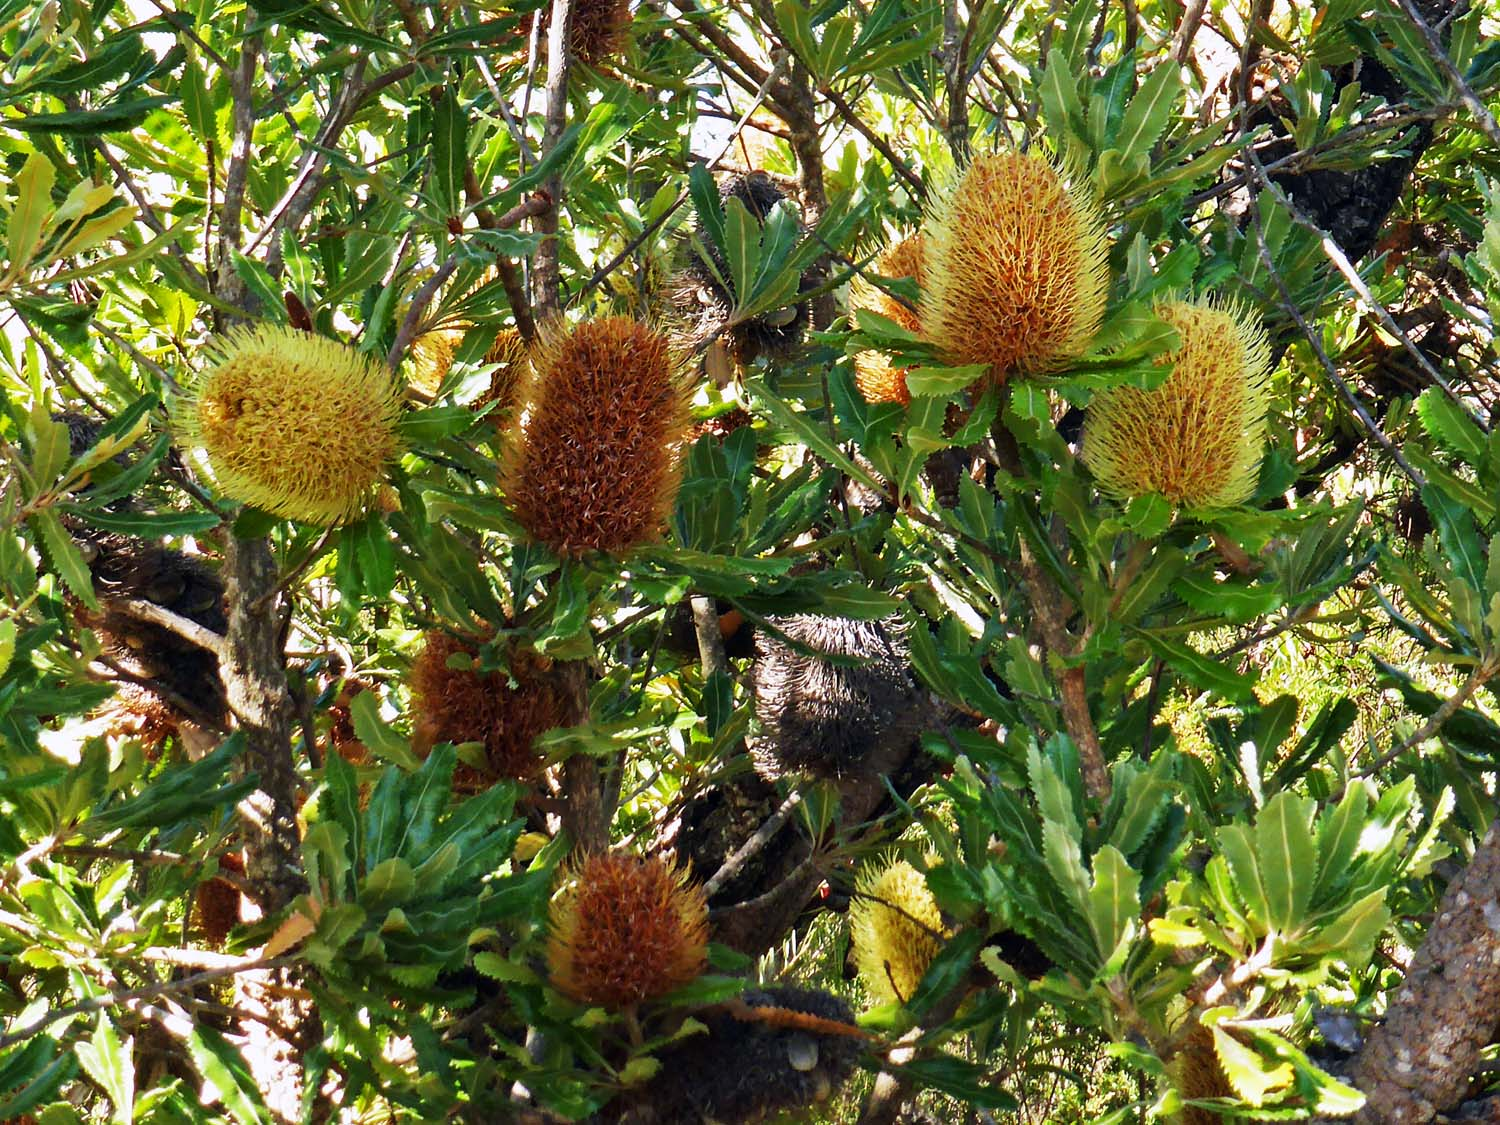 A cluster of banksia flowers